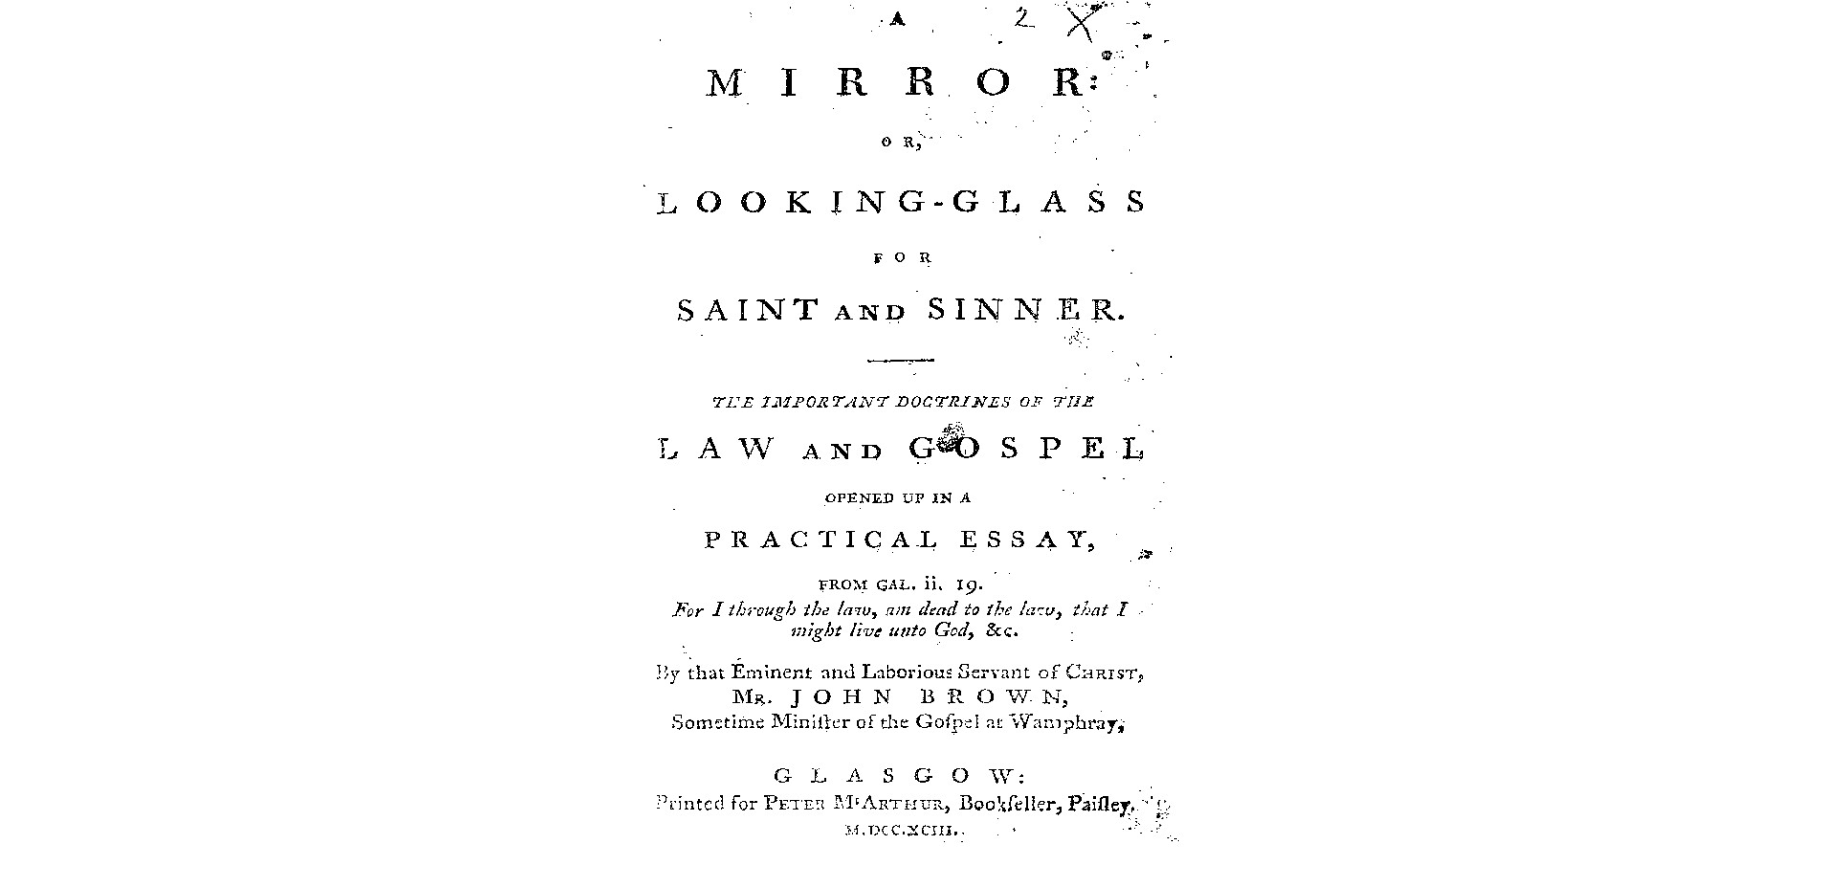 anthropological looking glass essay Charles cooley charles cooley captured my interest when selecting a sociologist to research after doing some research, i became intrigued with cooley's theory of the looking glass self, and how it effects our society.